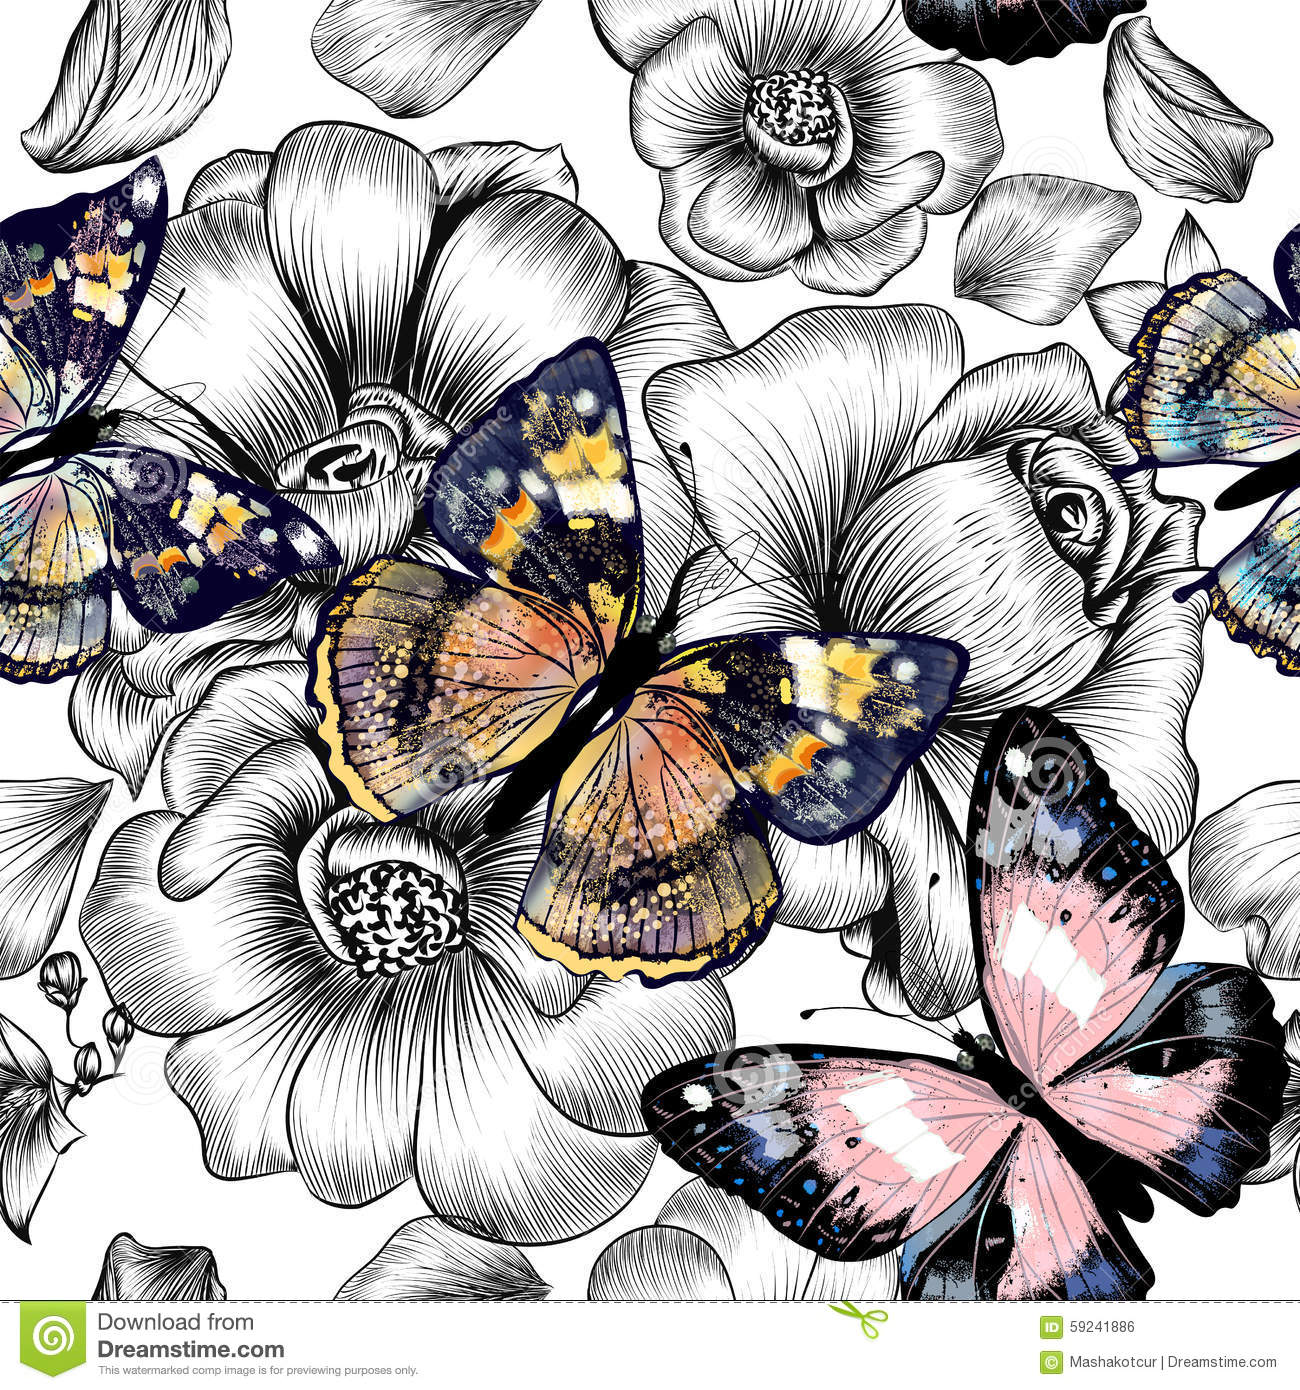 Most Inspiring Wallpaper Butterfly Hand - vector-seamless-wallpaper-pattern-vintage-butterflies-r-floral-engraved-hand-drawn-flowers-colorful-59241886  Photograph_239642.jpg